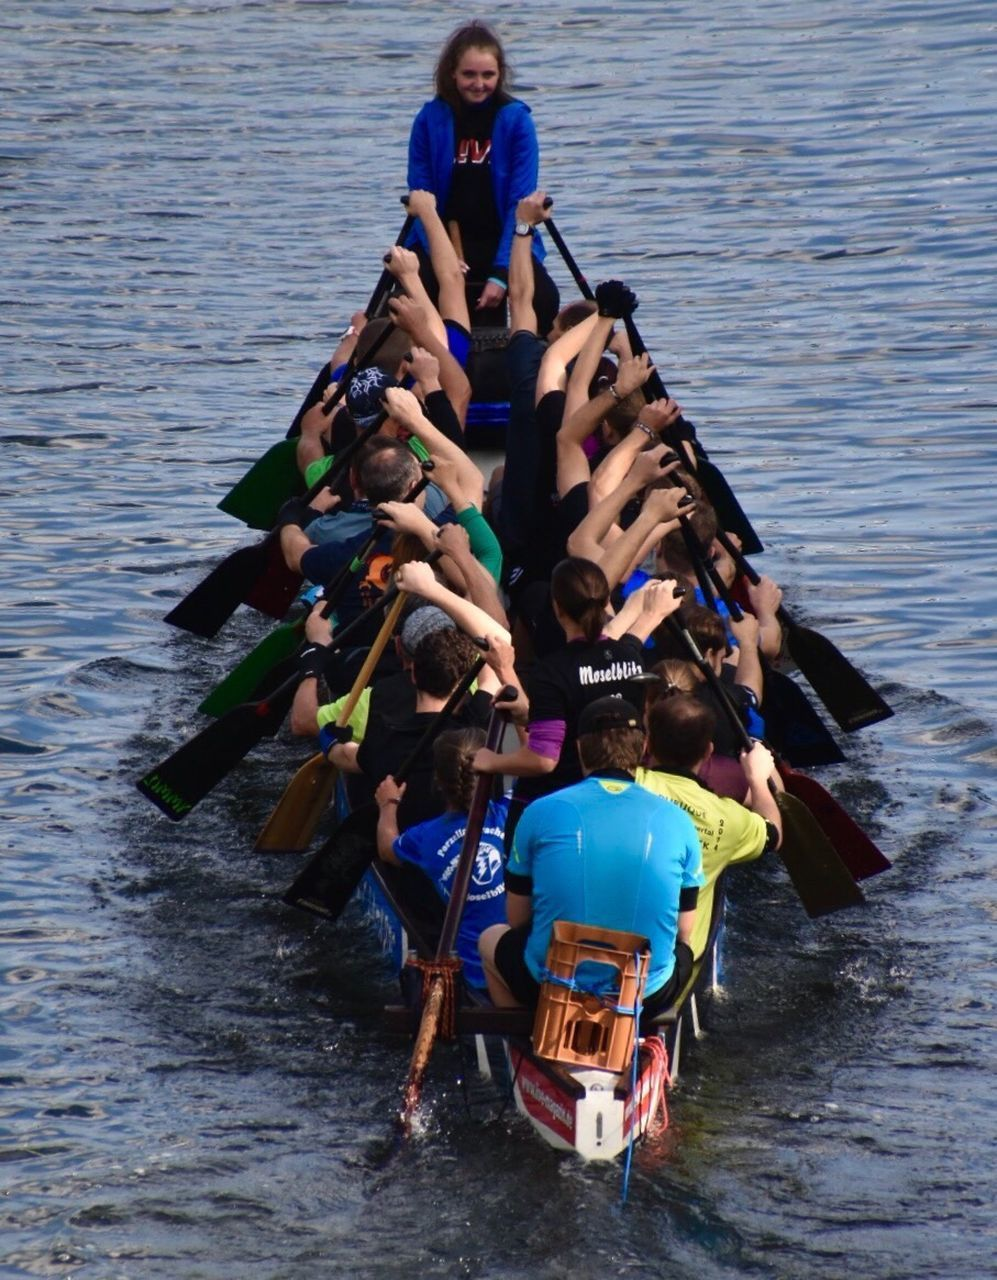 water, leisure activity, river, togetherness, real people, nautical vessel, oar, day, outdoors, men, nature, full length, rowing, young adult, women, young women, adult, adults only, people